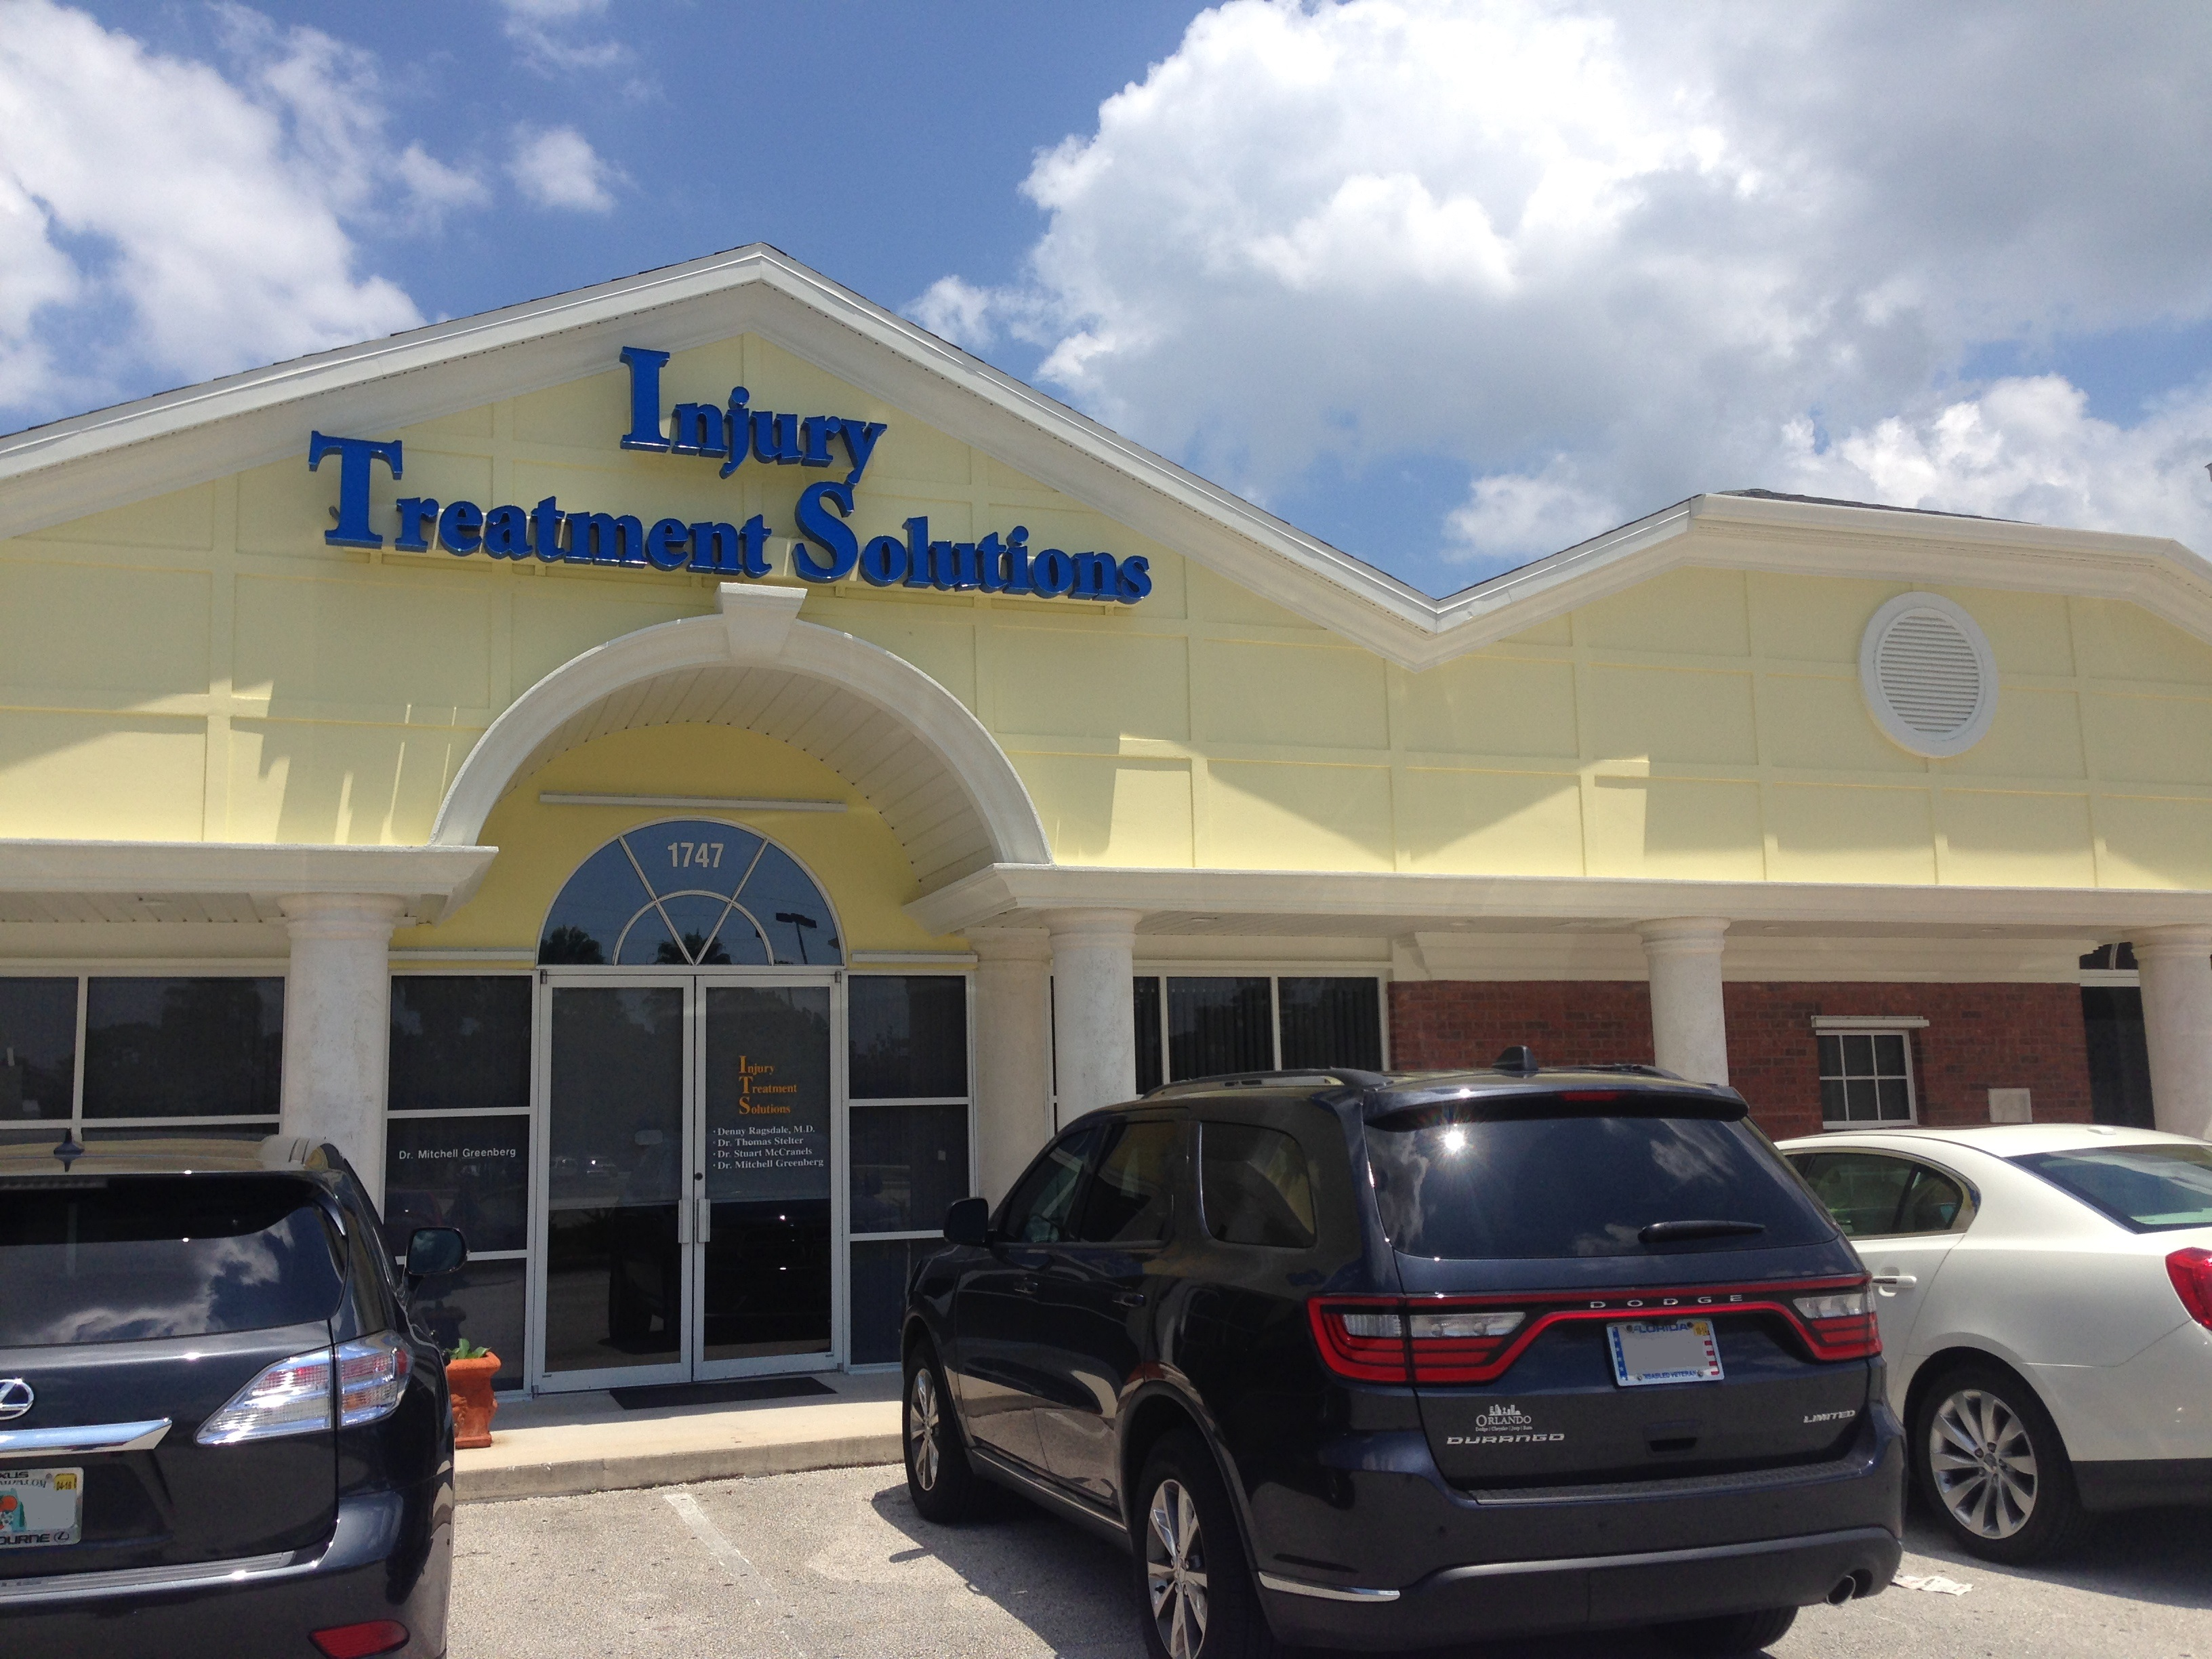 Injury Treatment Solutions 1747 Evans Rd Ste 101 ...